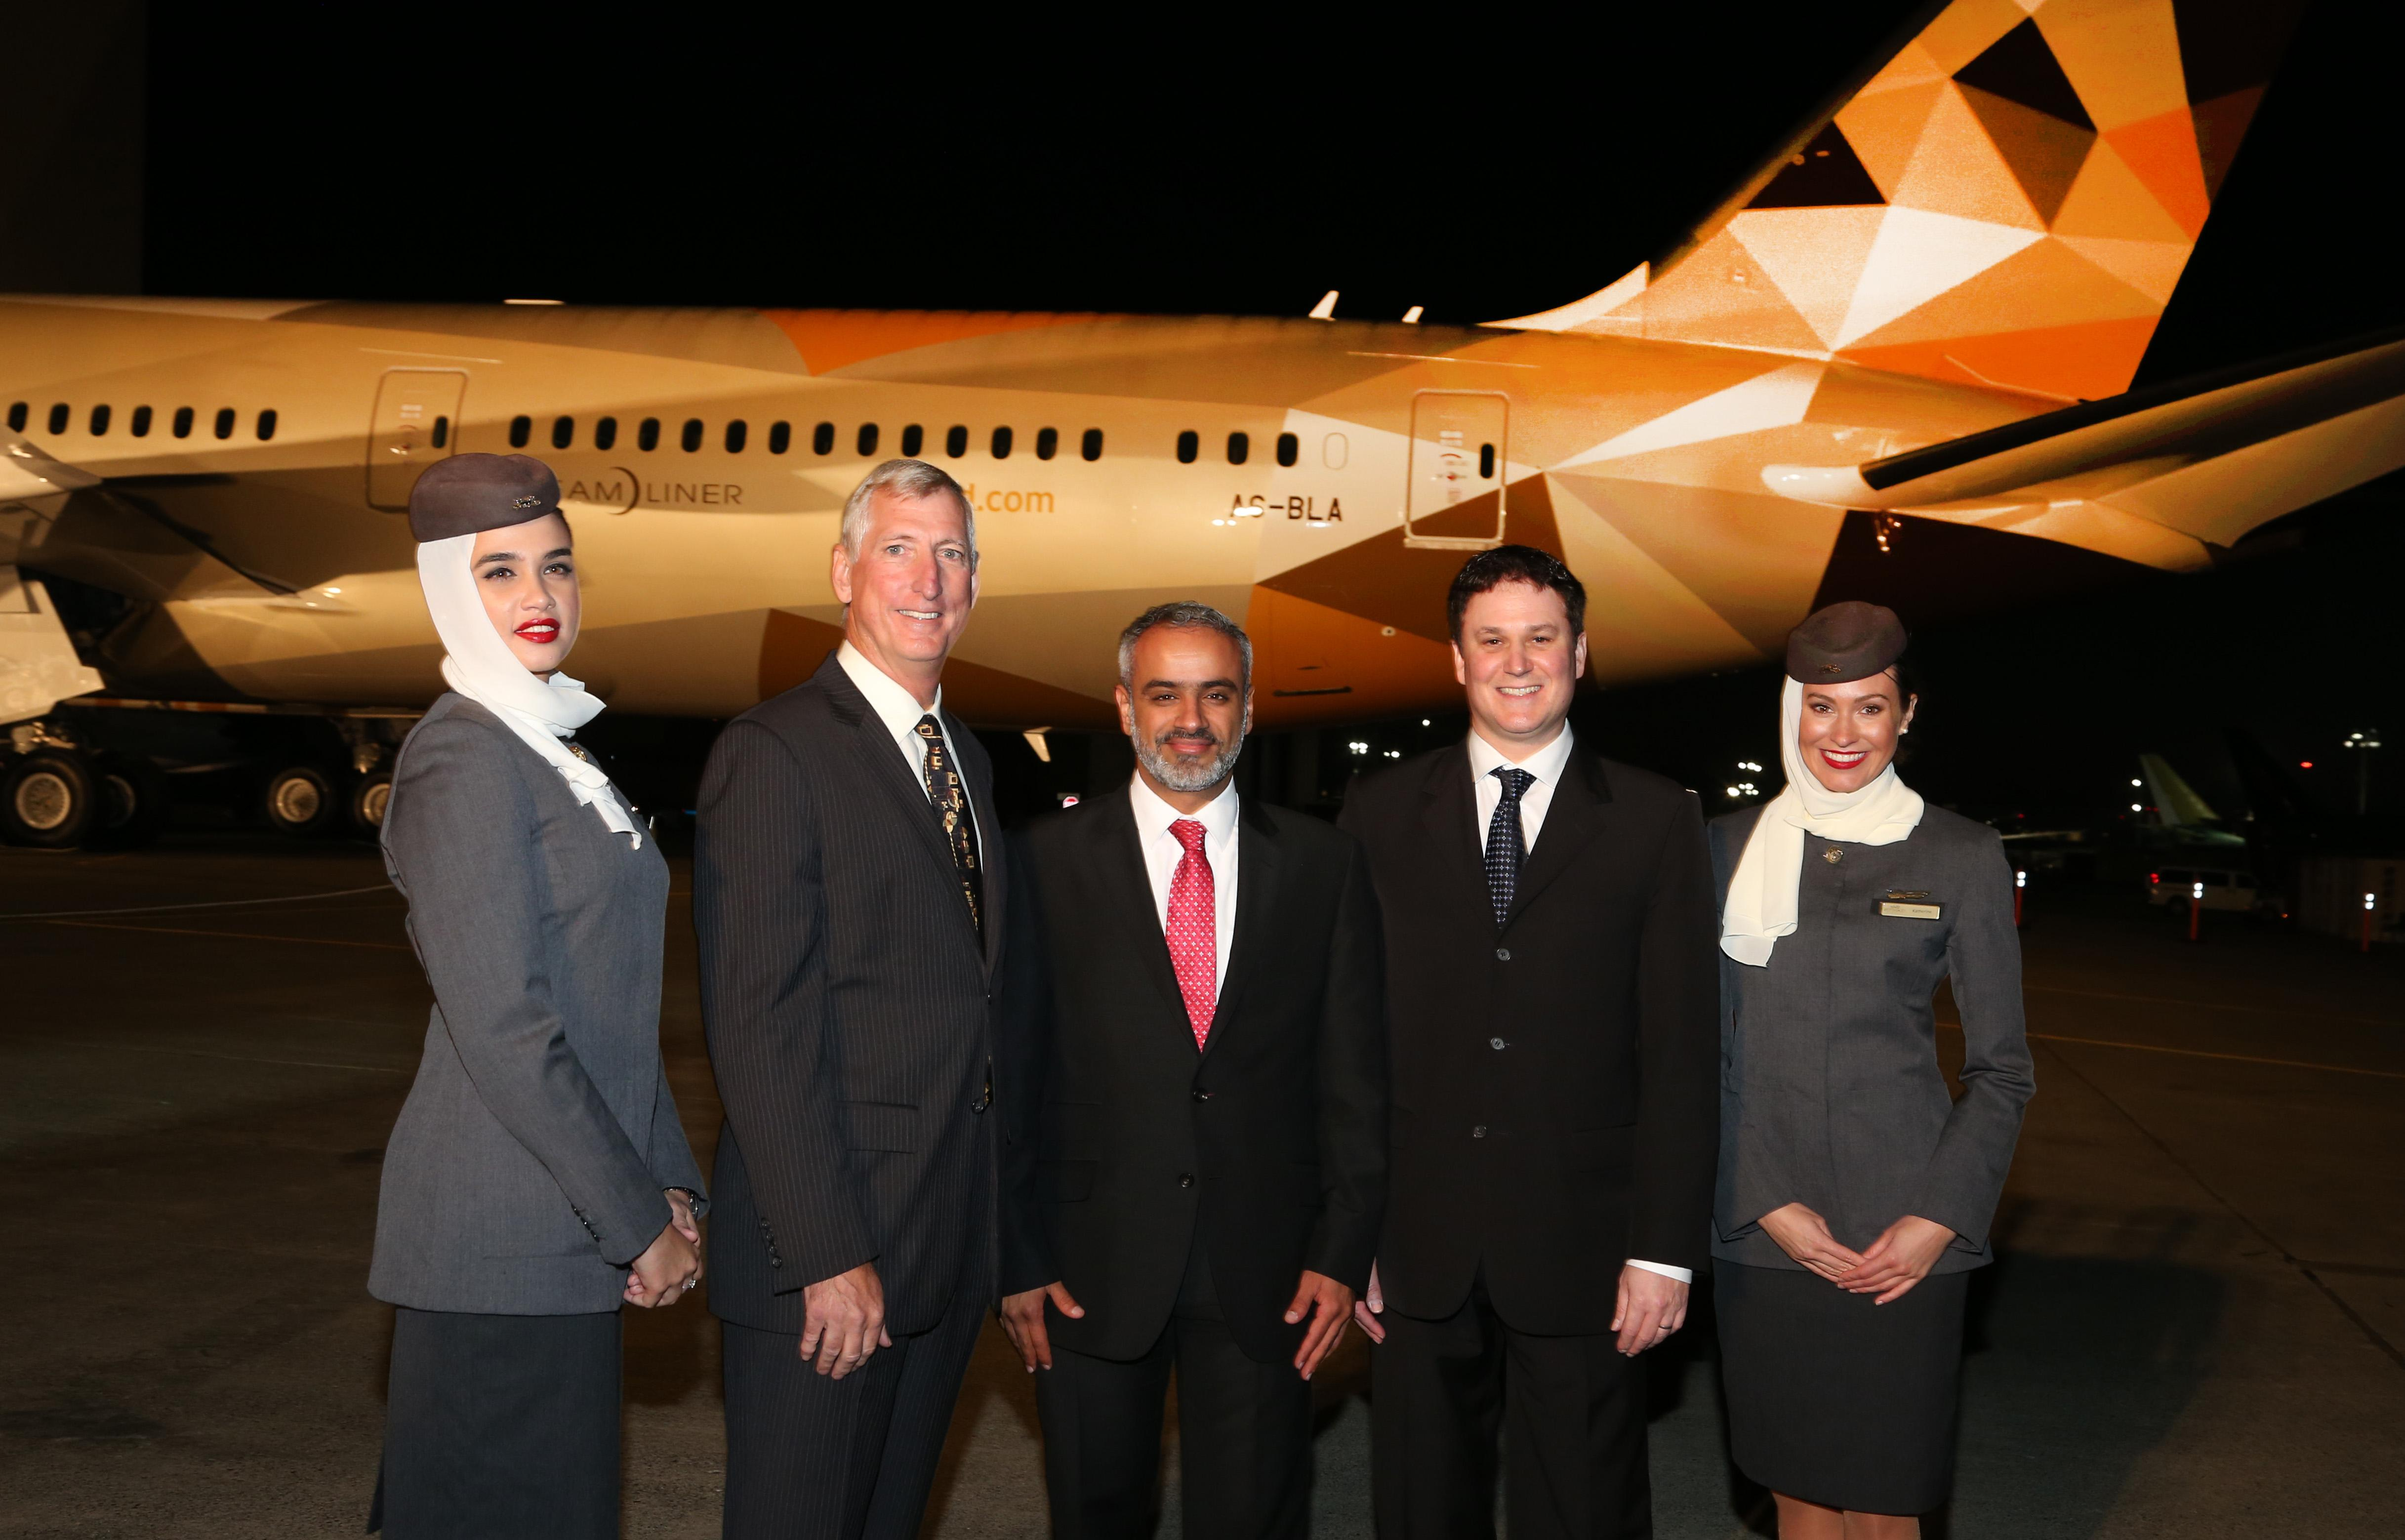 Etihad Airways 787-9 Dreamliner - SMADE MEDIA (2)